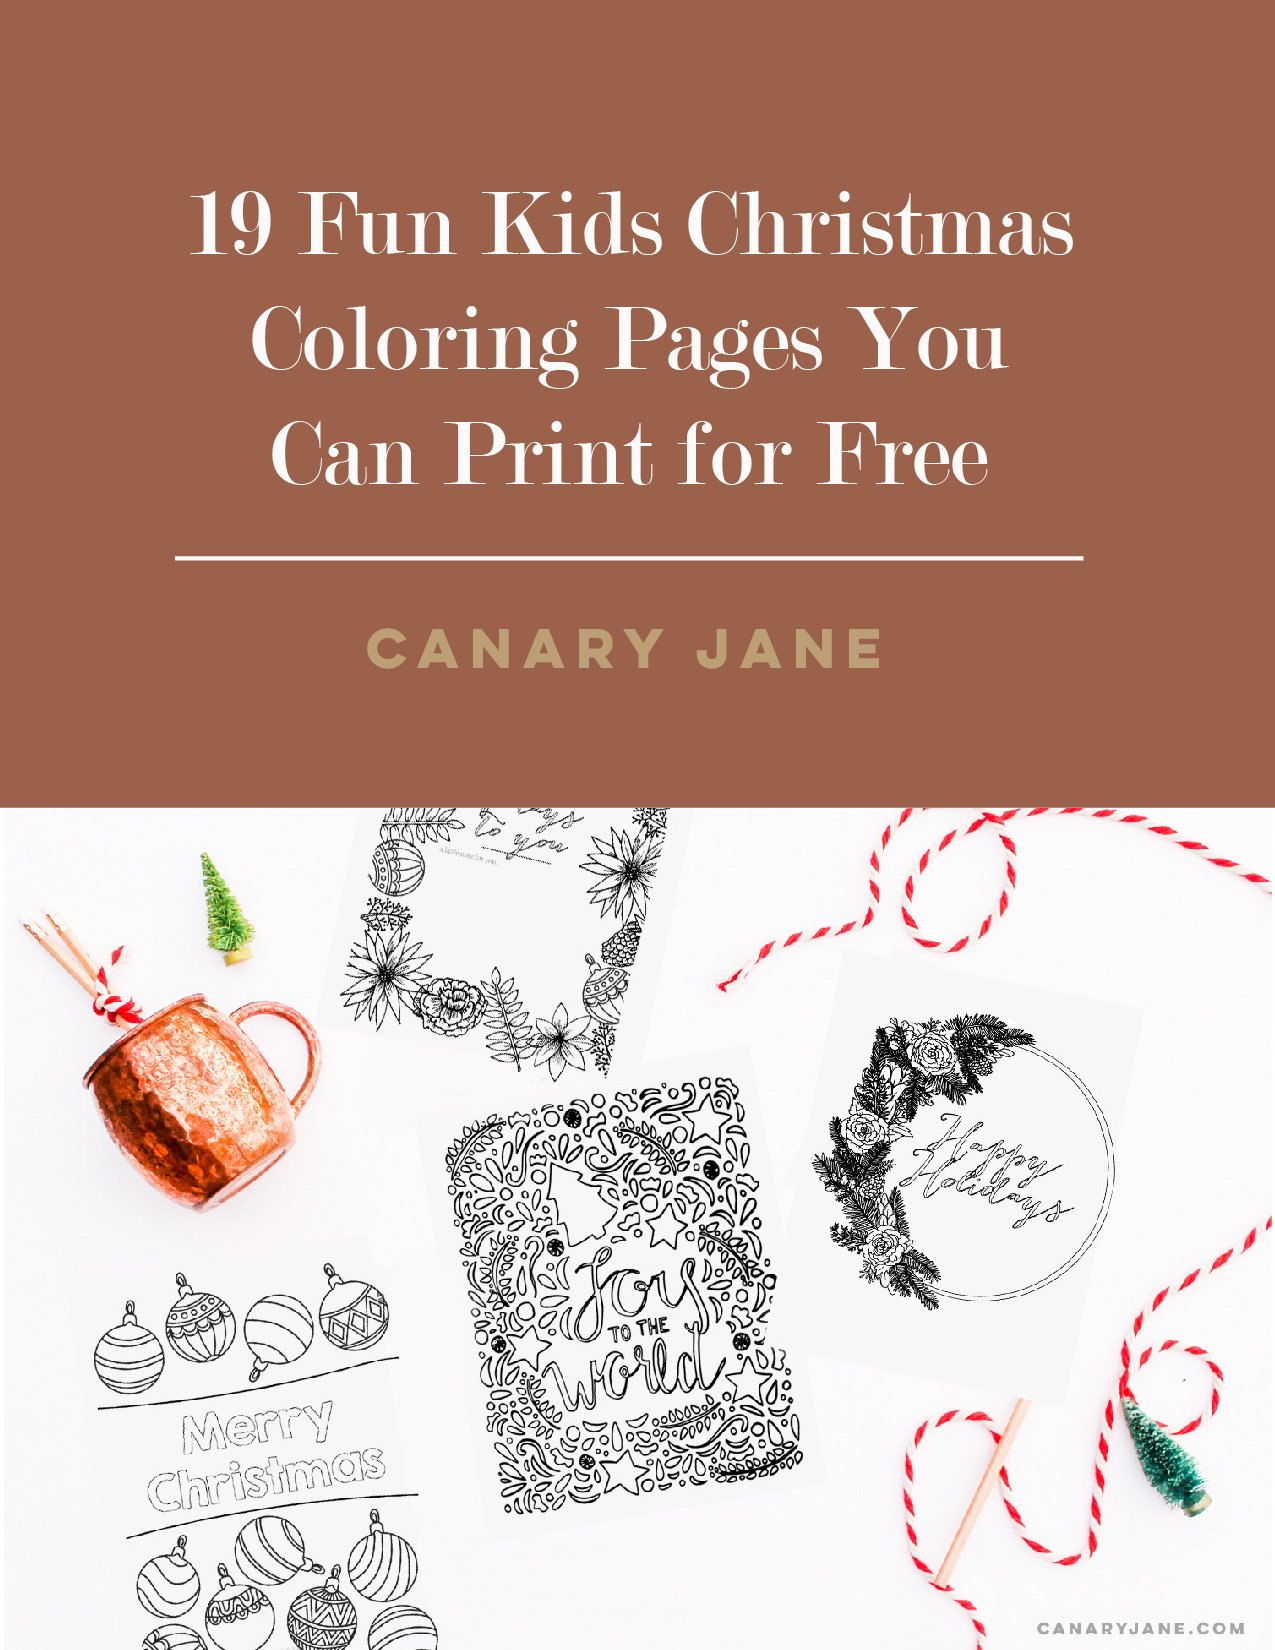 19 Fun Kids Christmas Coloring Pages!